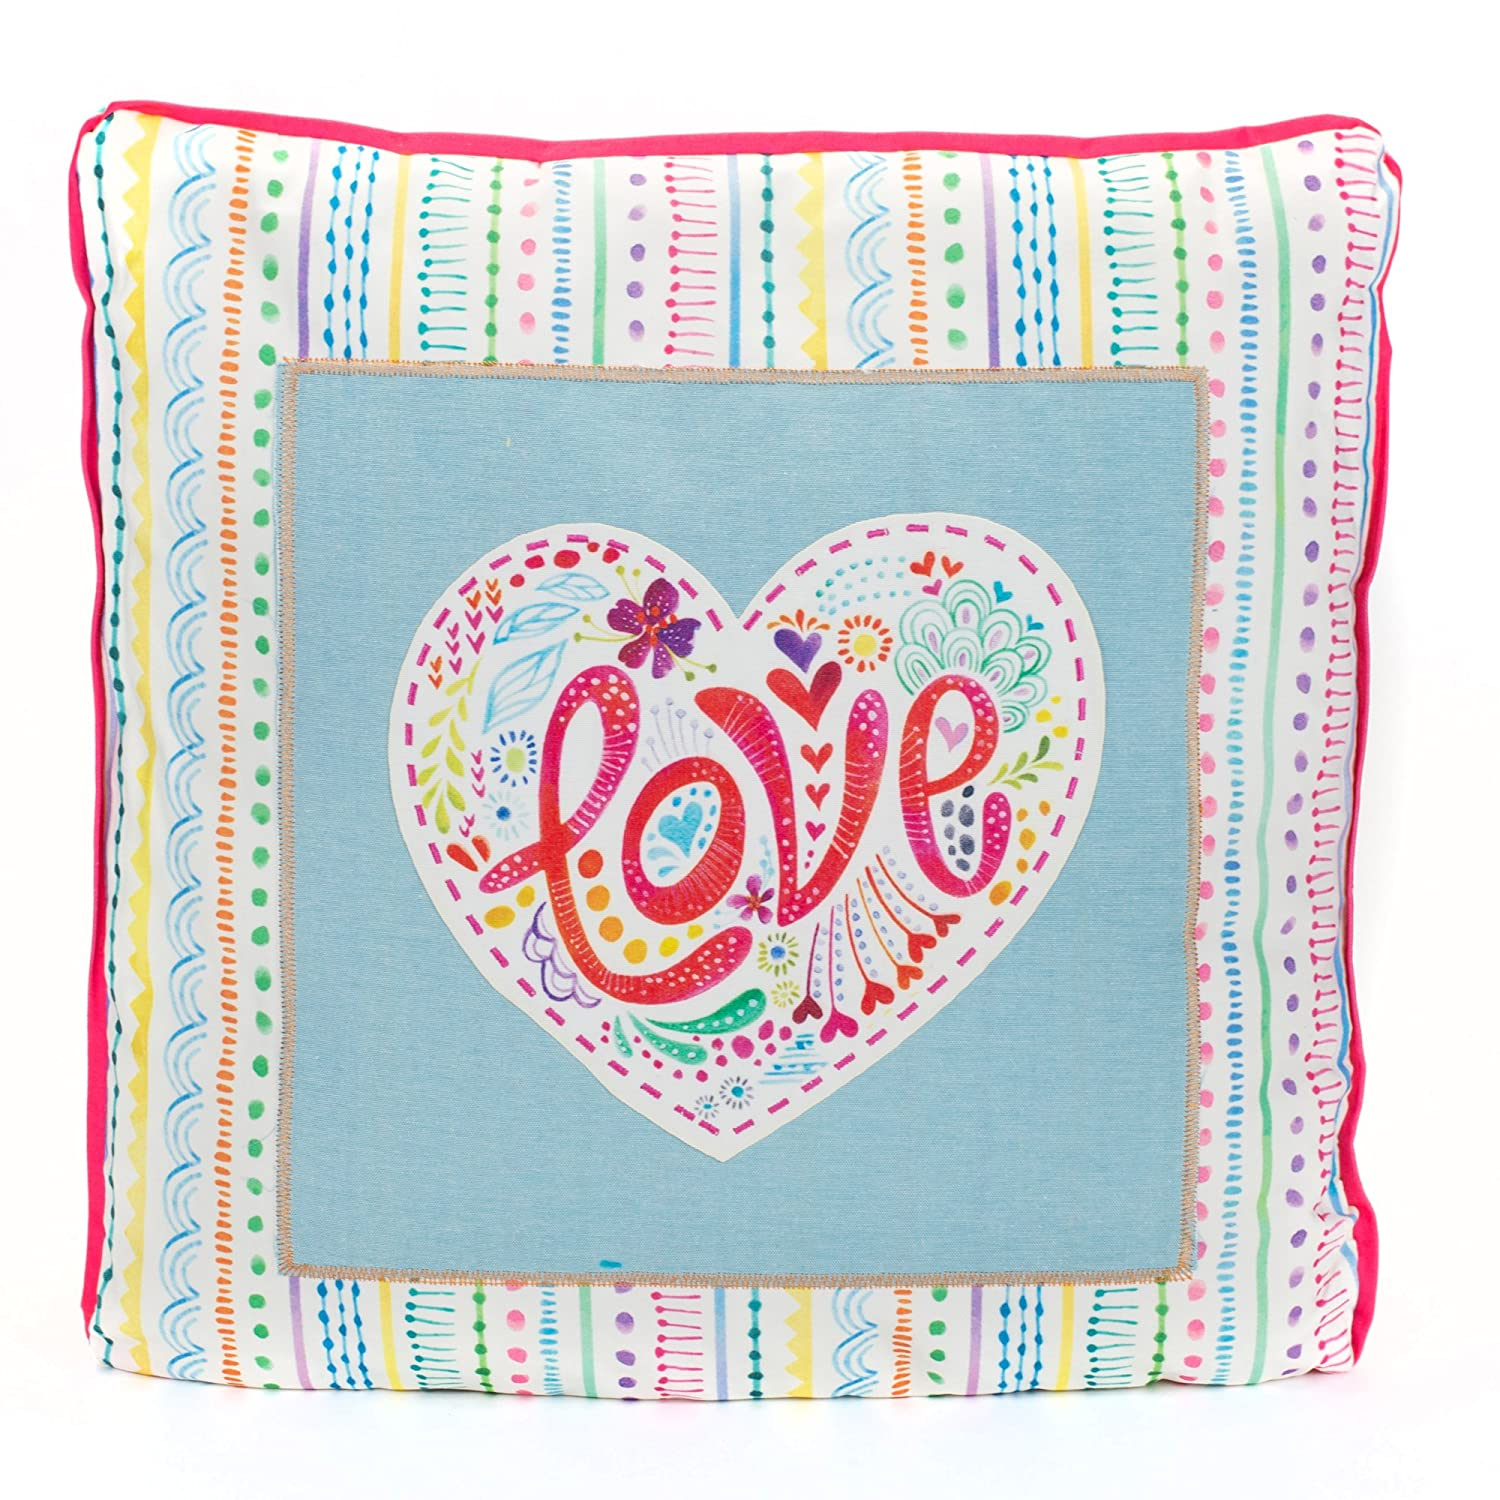 Love Watercolor Pattern Square 12 x 12 Inch Affirmation Throw Pillow